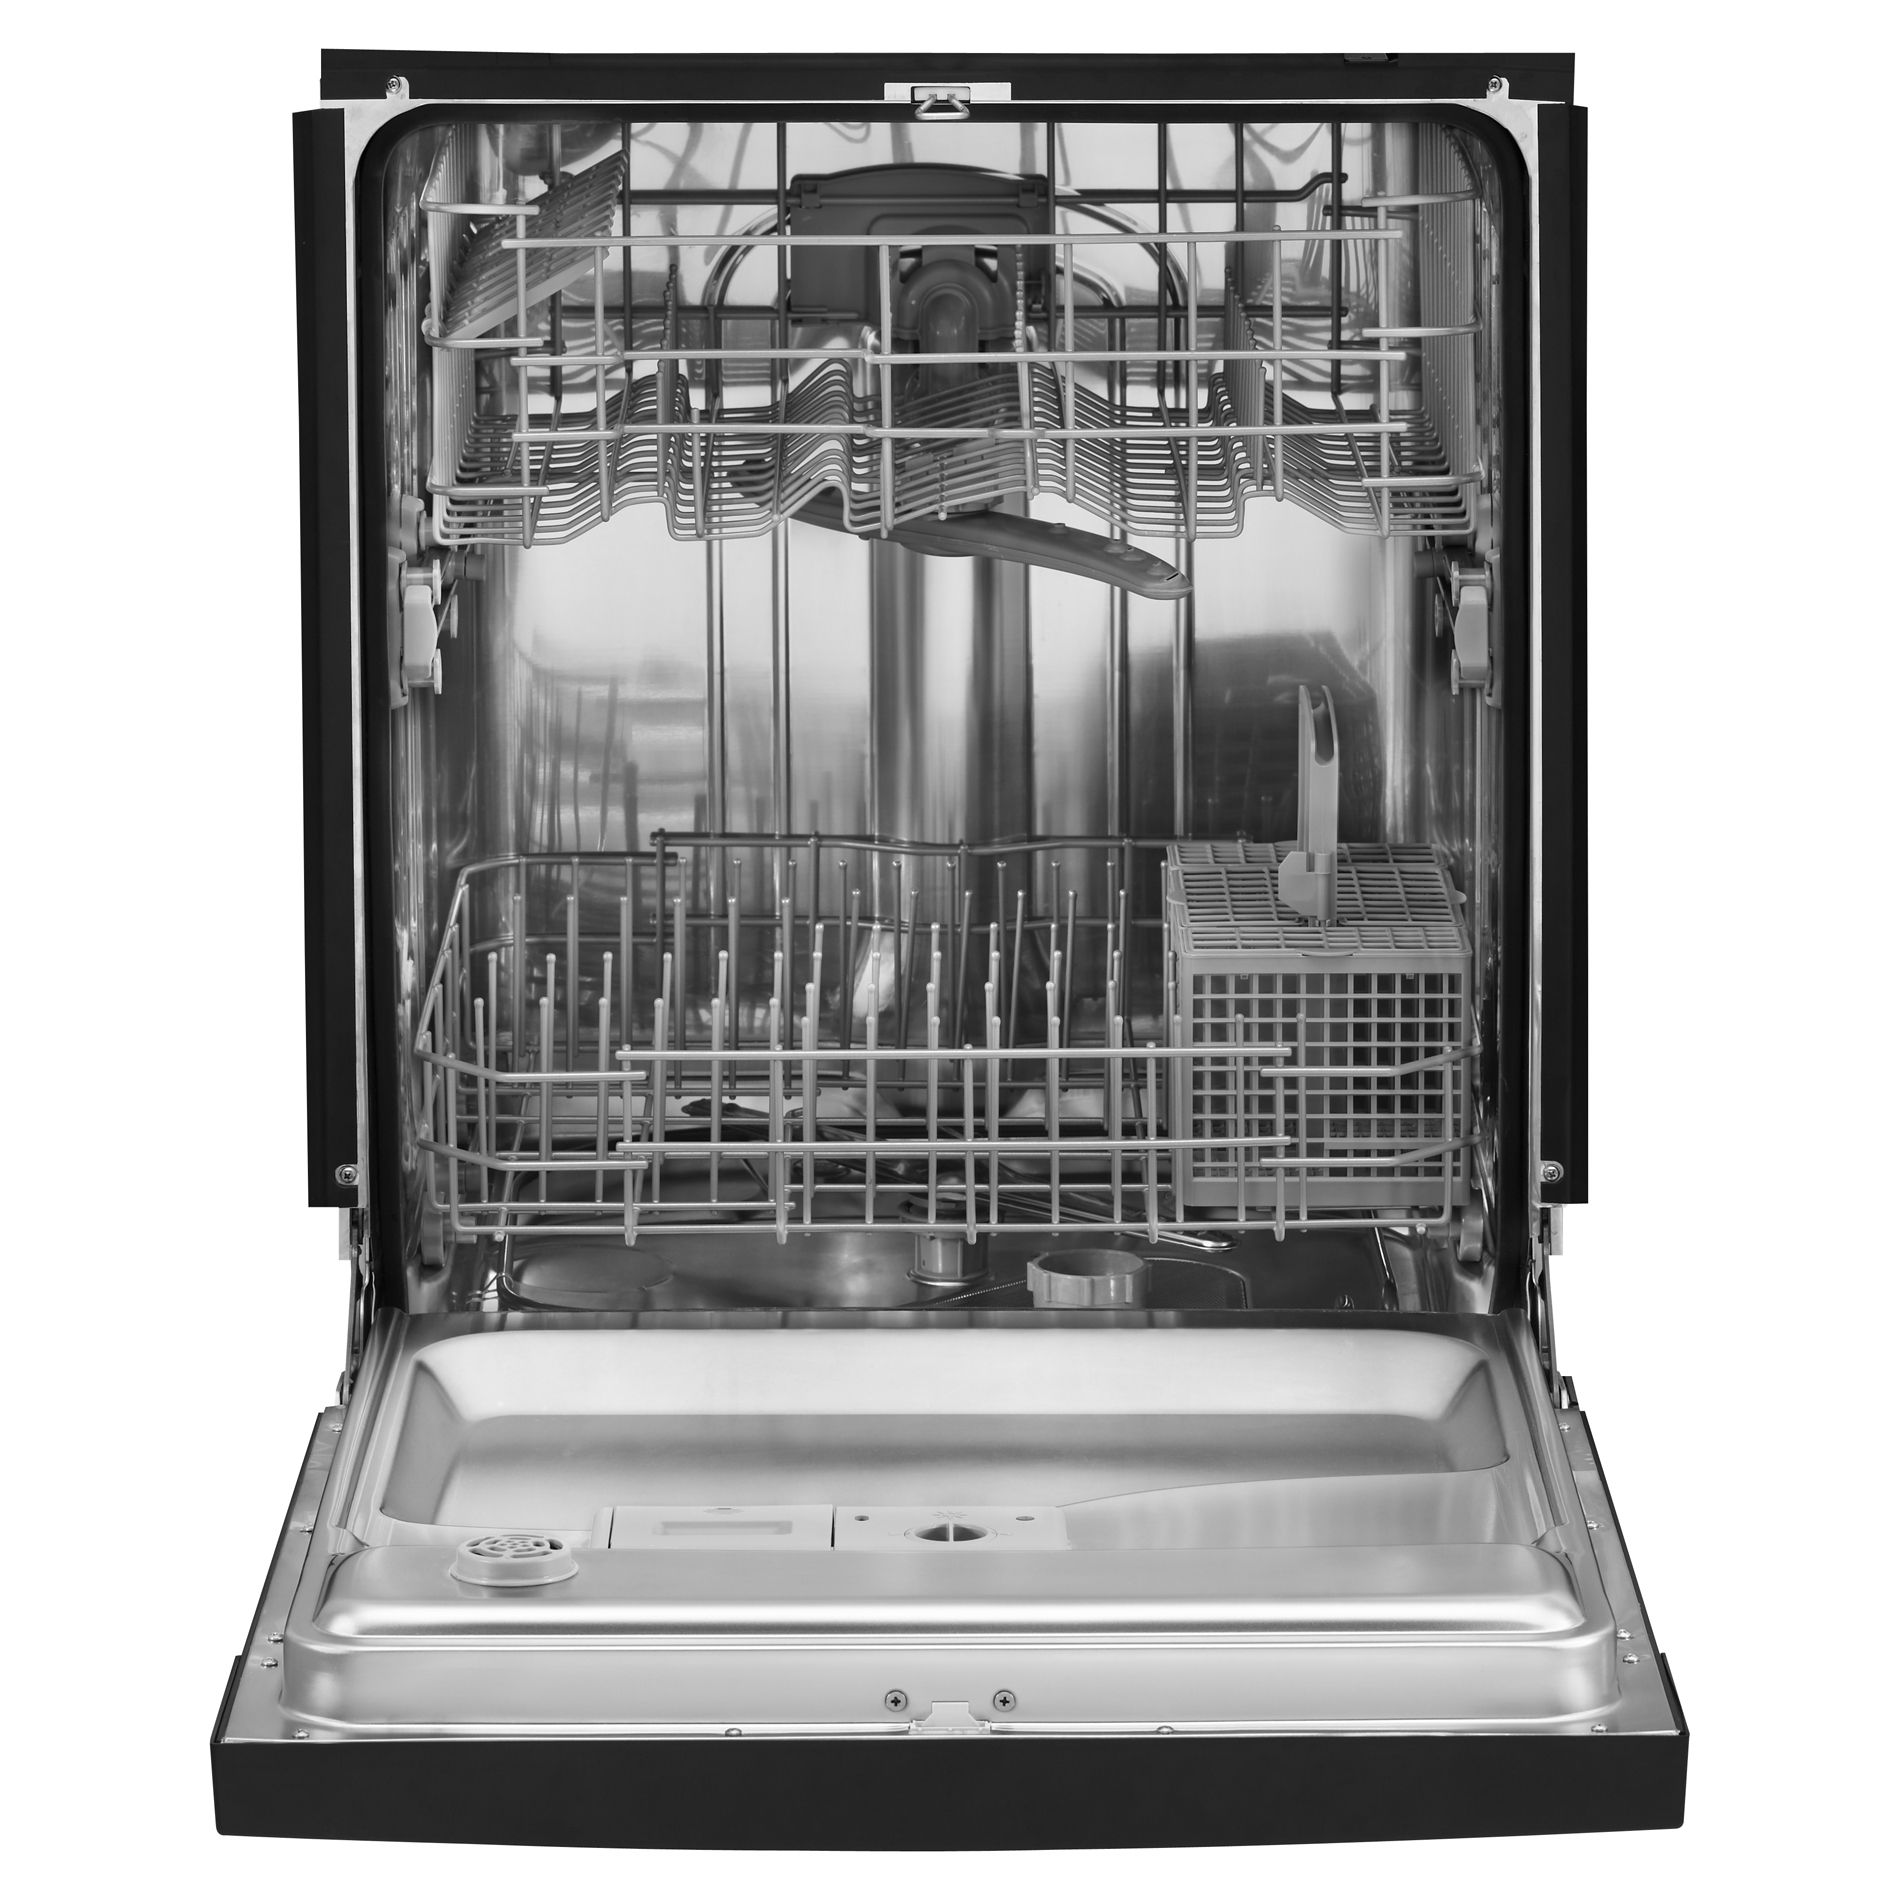 "Whirlpool Gold 24"" Built-In Dishwasher"